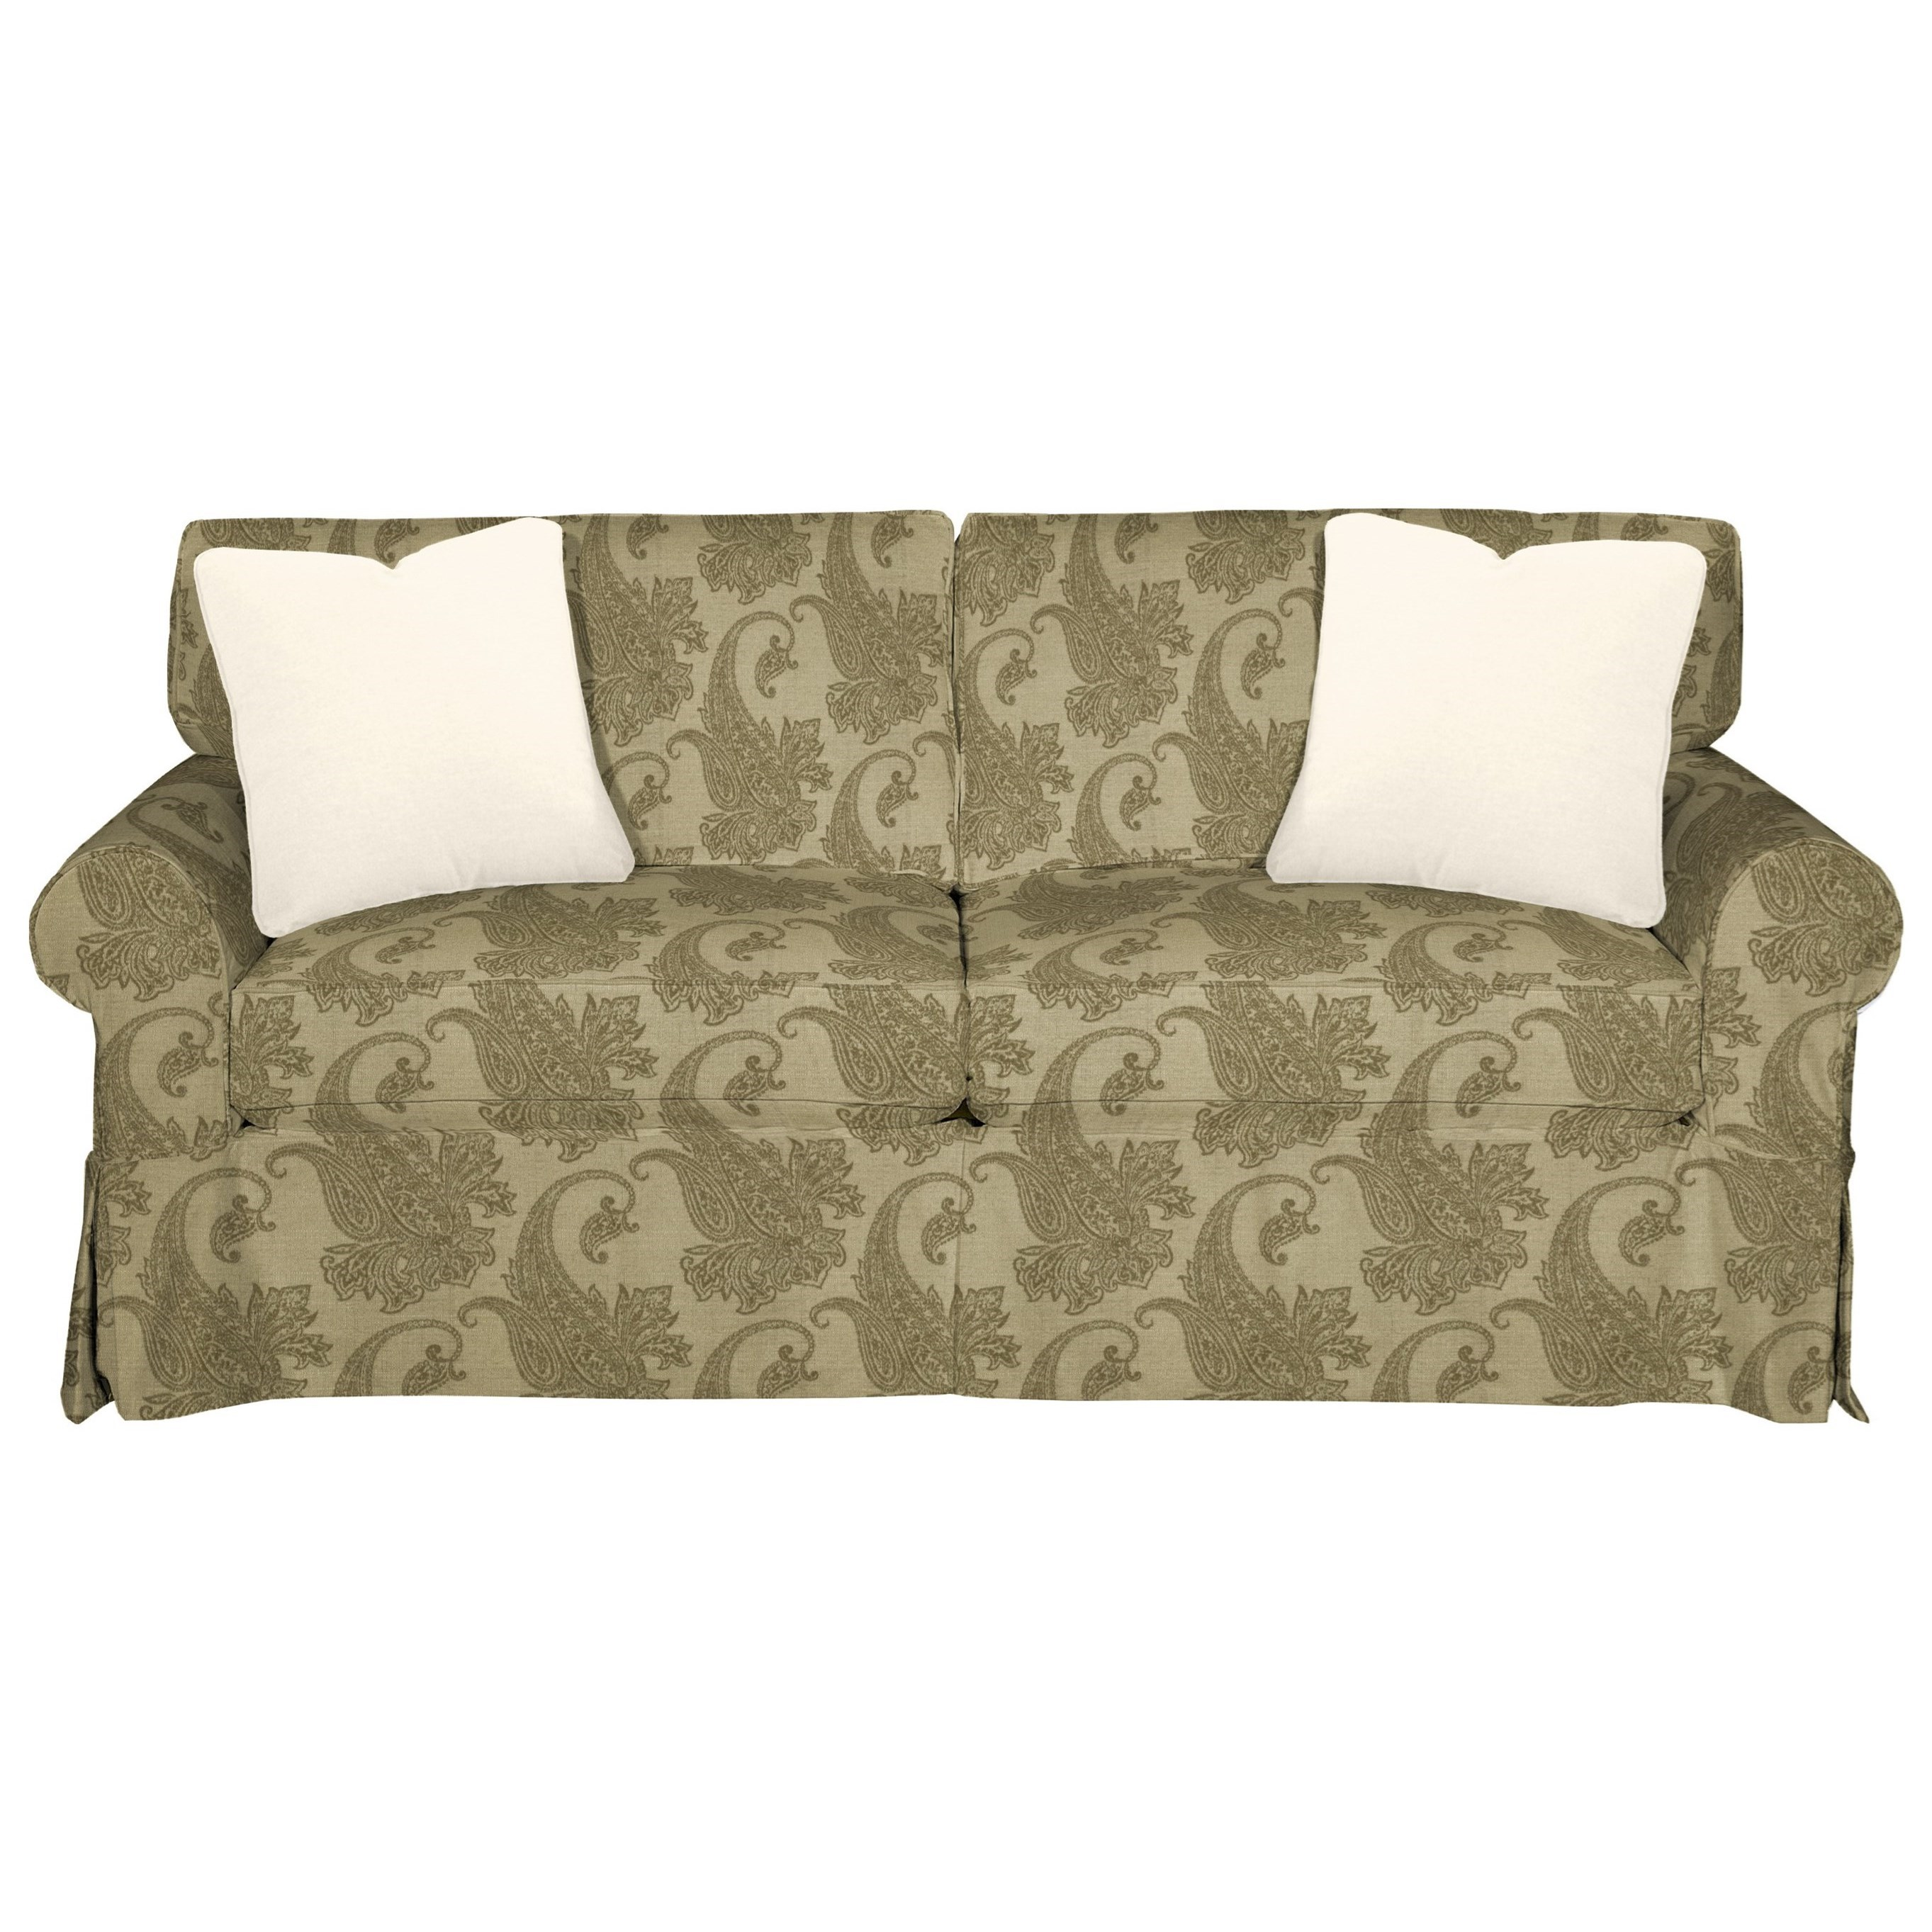 9228 Sleeper Sofa w/ Innerspring Mattress by Craftmaster at Miller Home